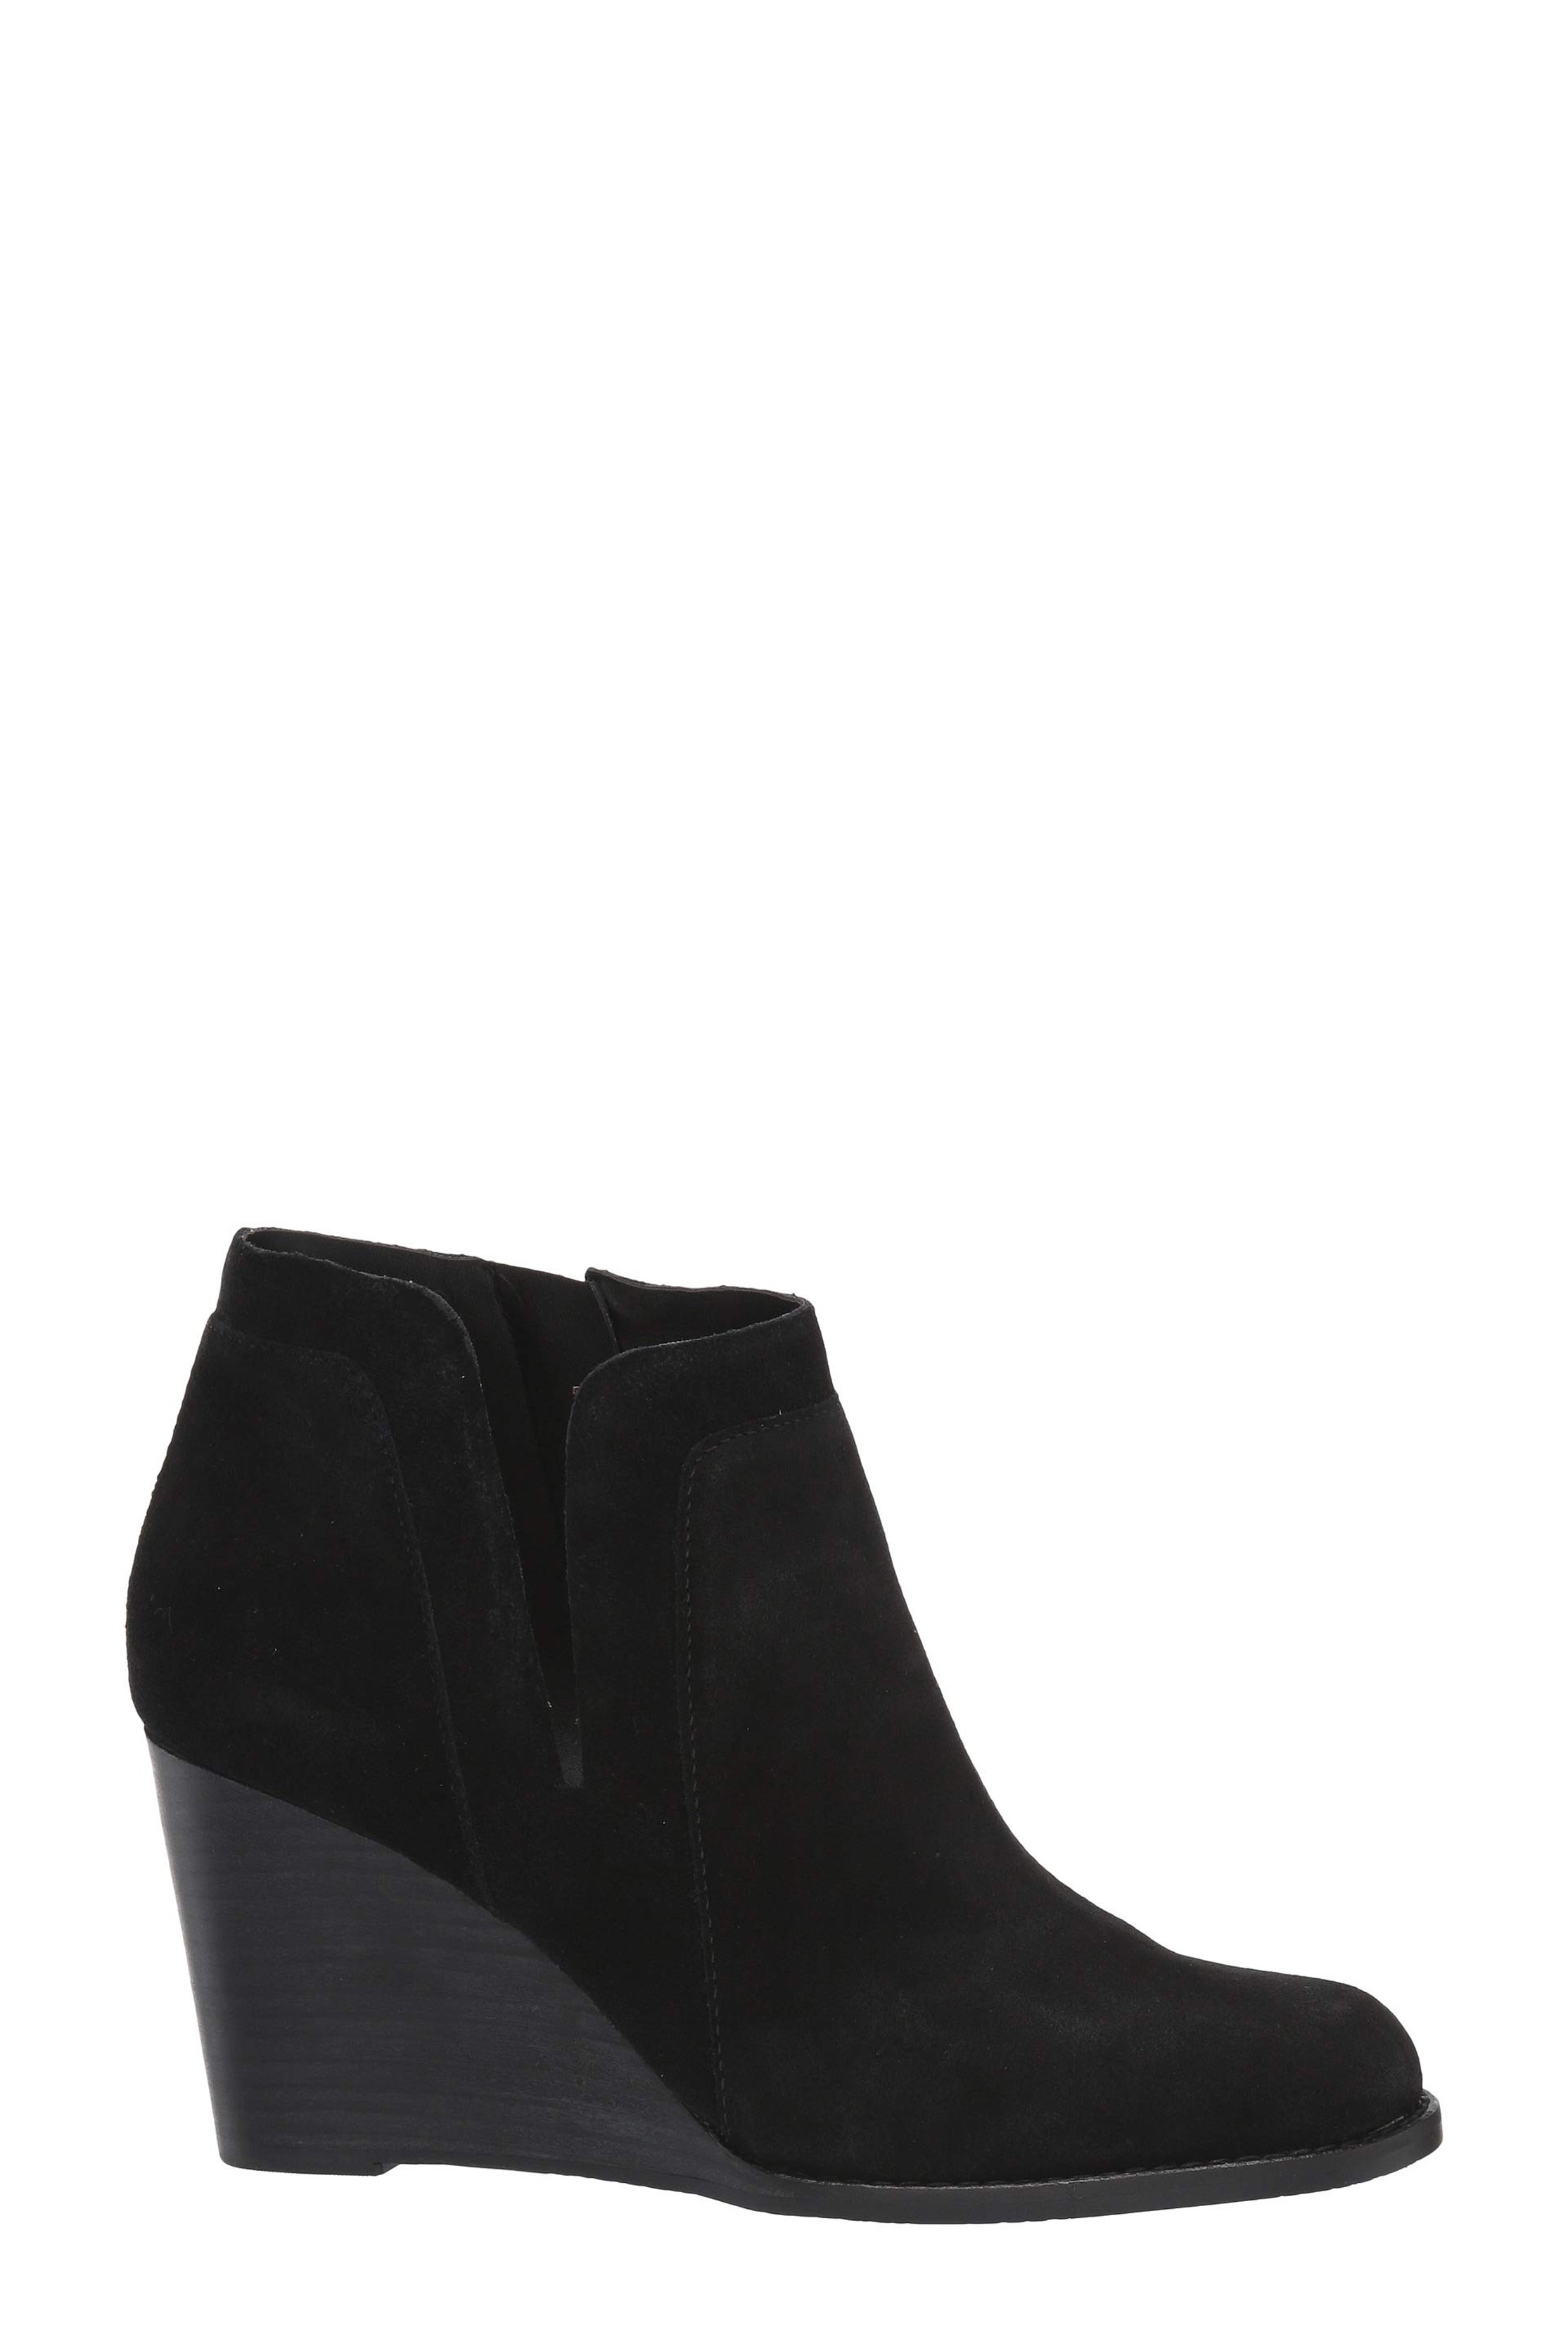 LUCKY BRAND YABBA Black Wedge Ankle Boot